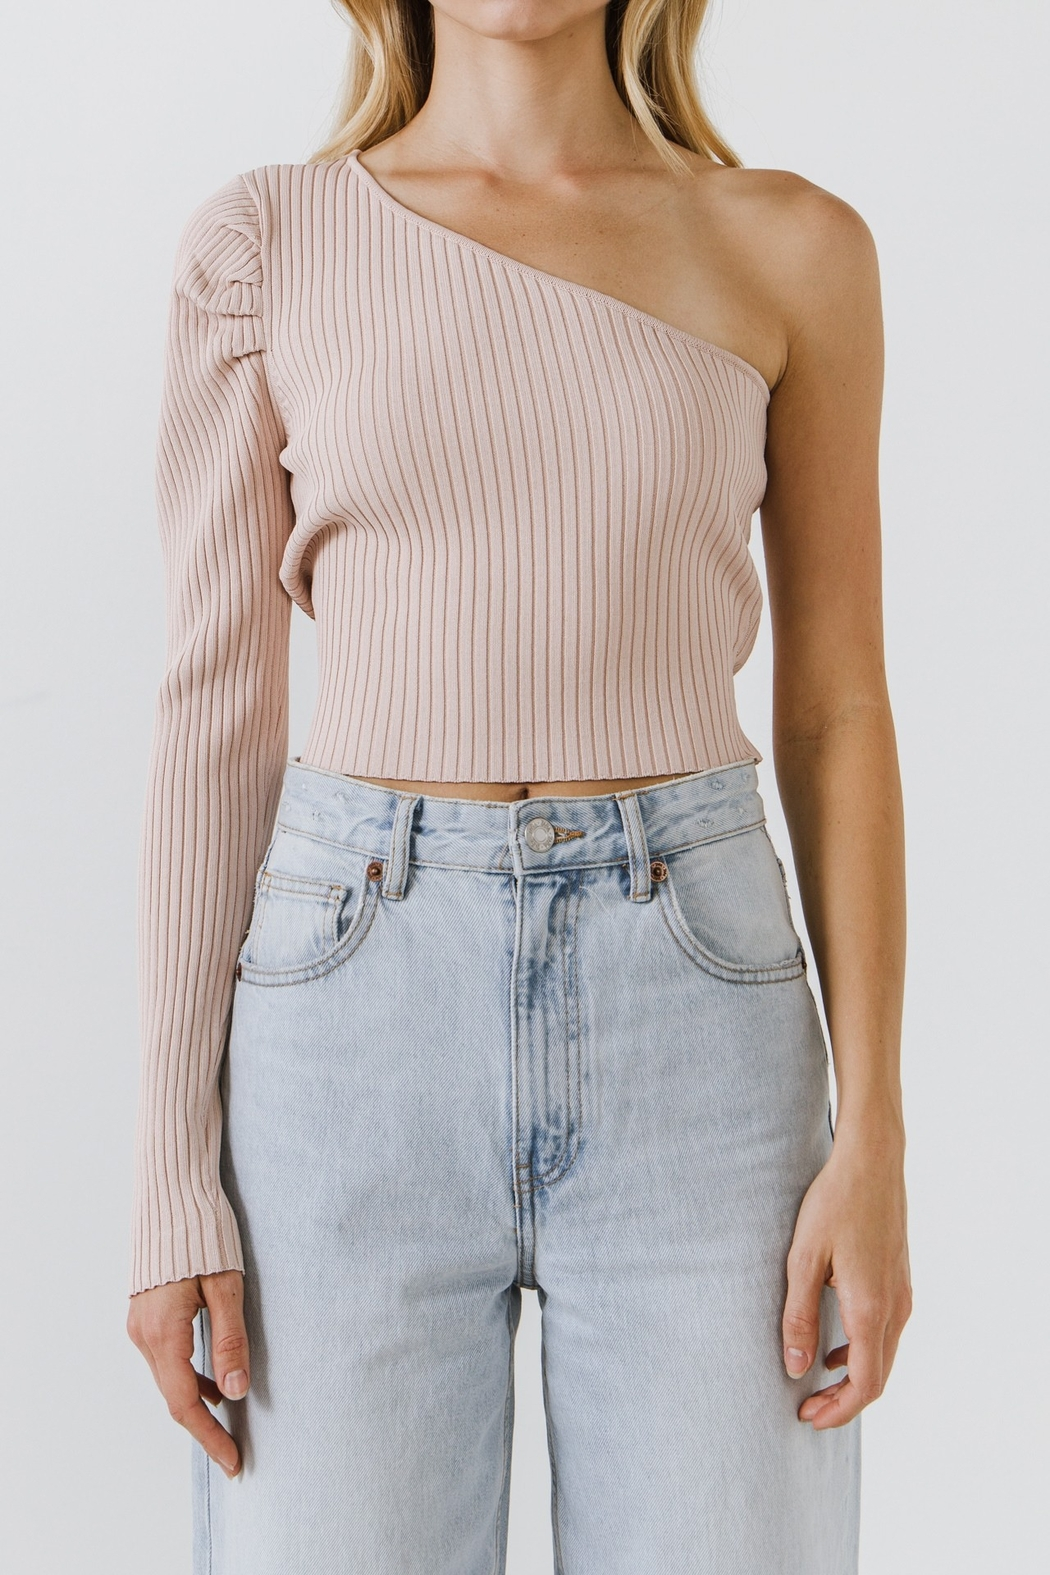 Endless Rose Pria Puff Sleeve One Shoulder Top - Front Full Image